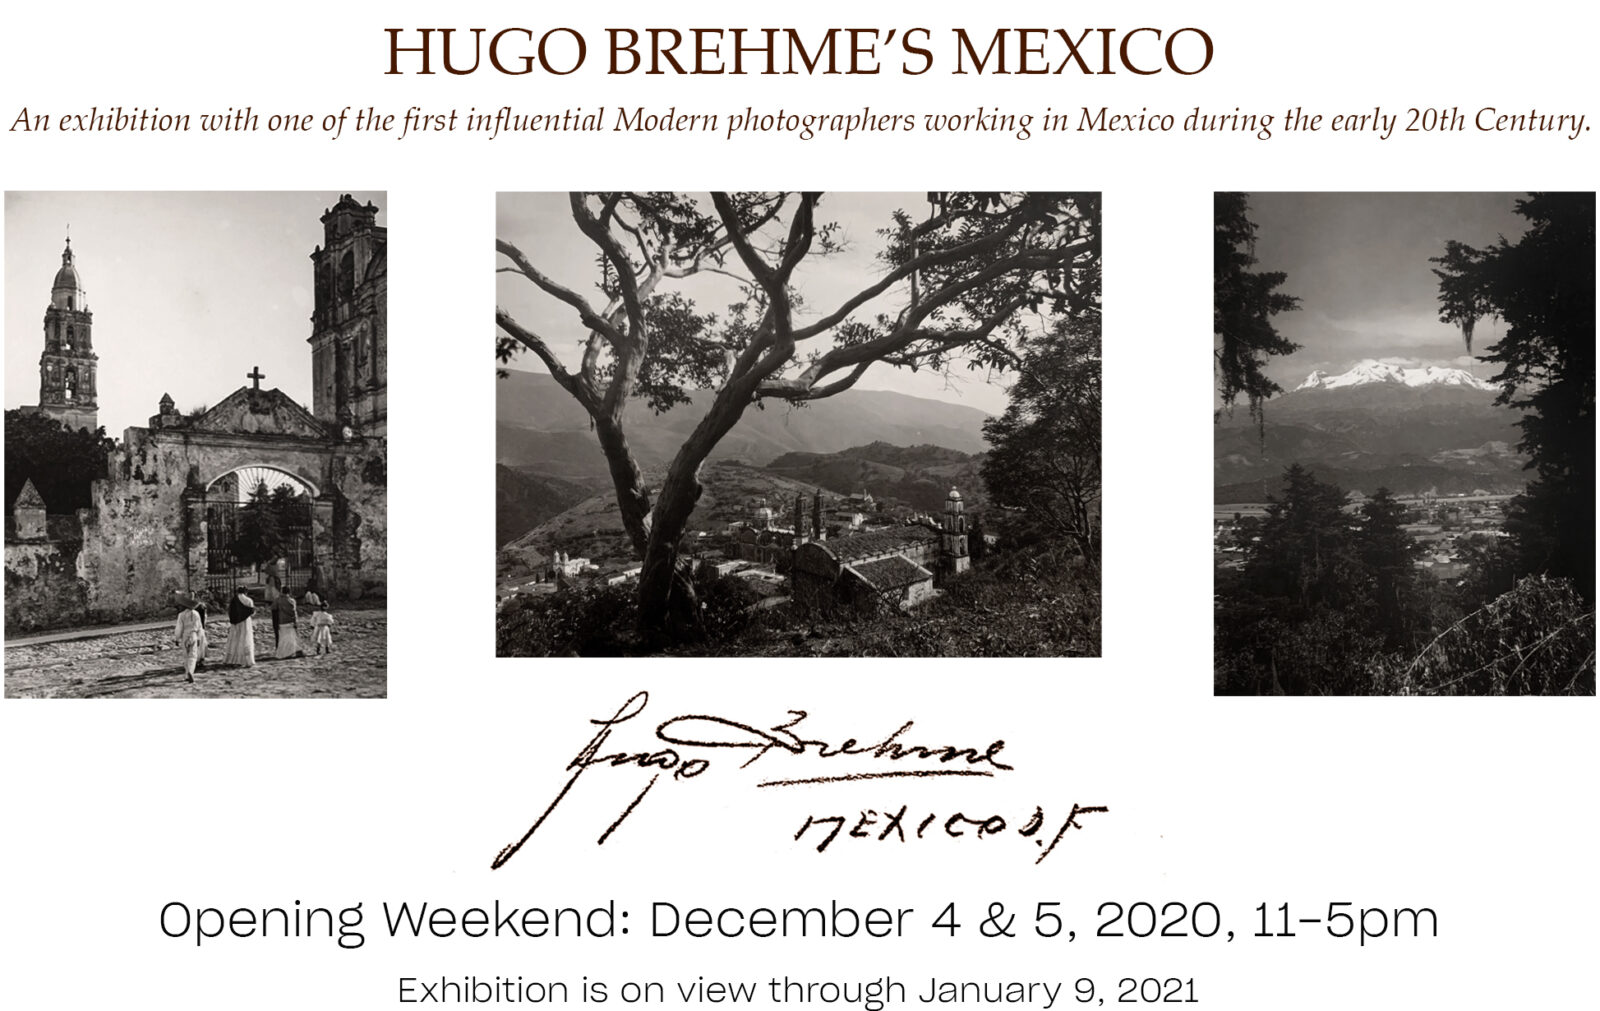 Hugo Brehme's mexico: an exhibition with one of the first influential modern photographers working in mexico during hte early 20th century